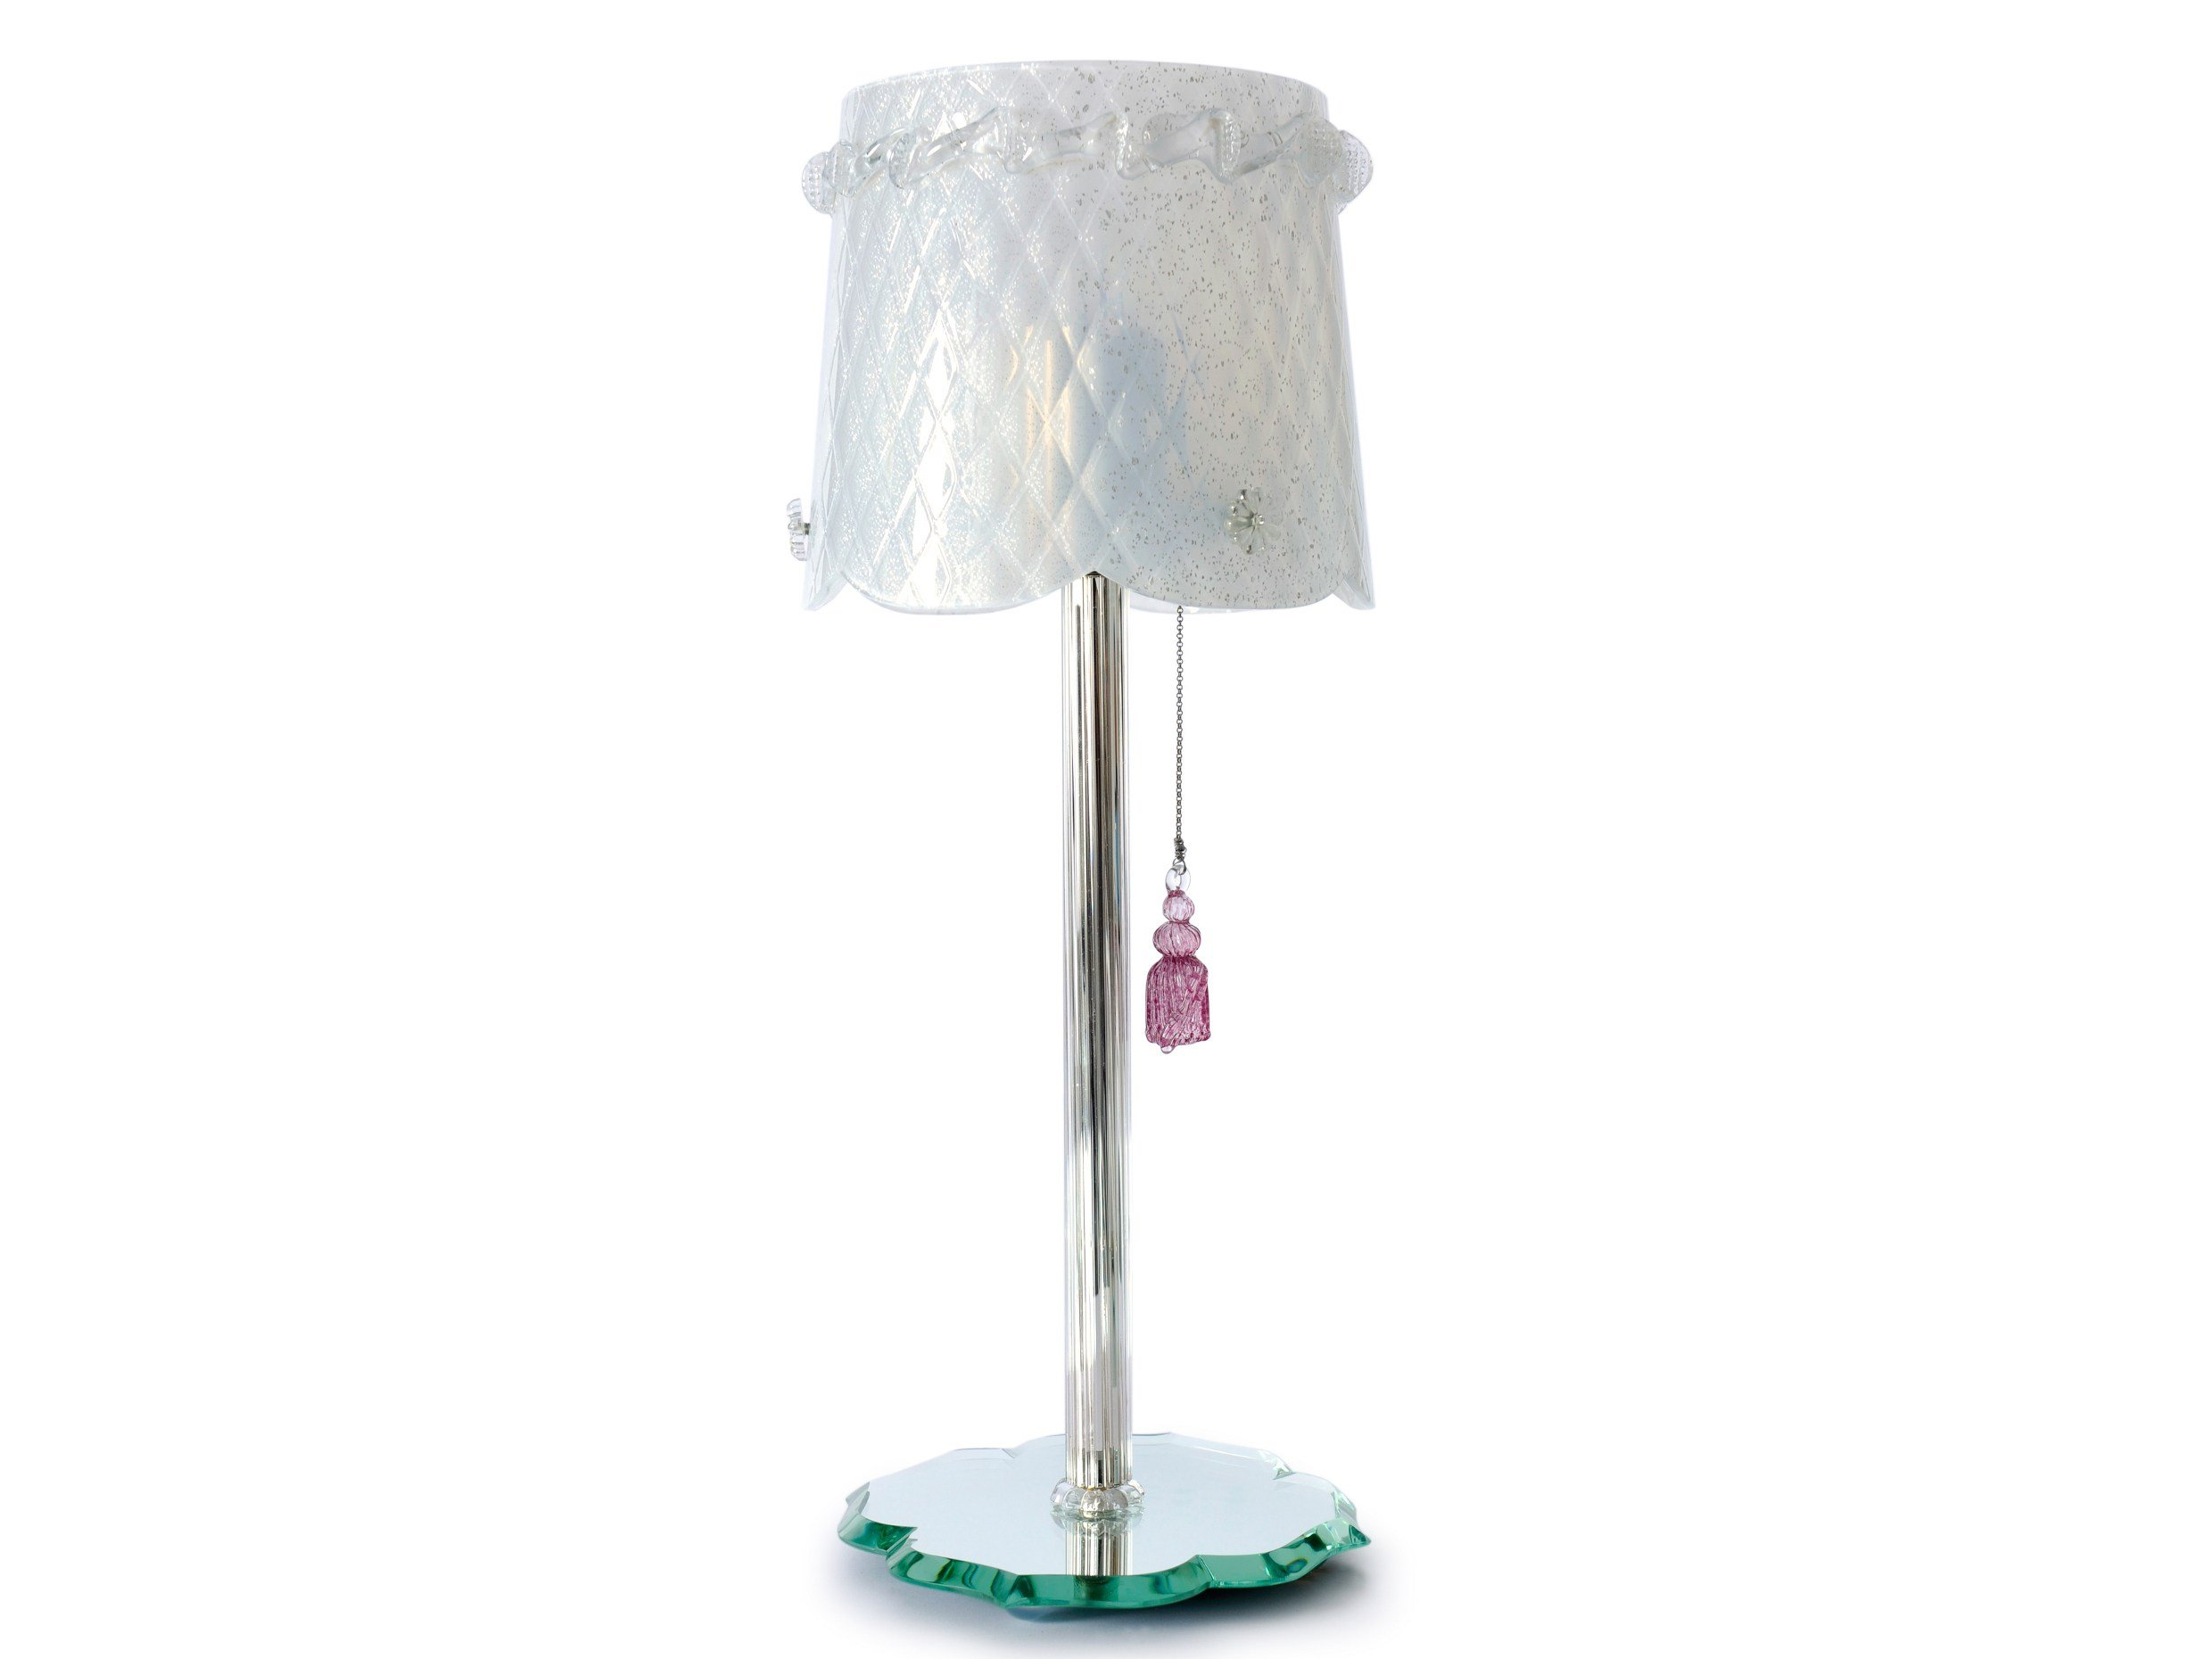 Lampe de table en verre de murano pompon collection belle de nuit by veronese - Lampe de table de nuit ...